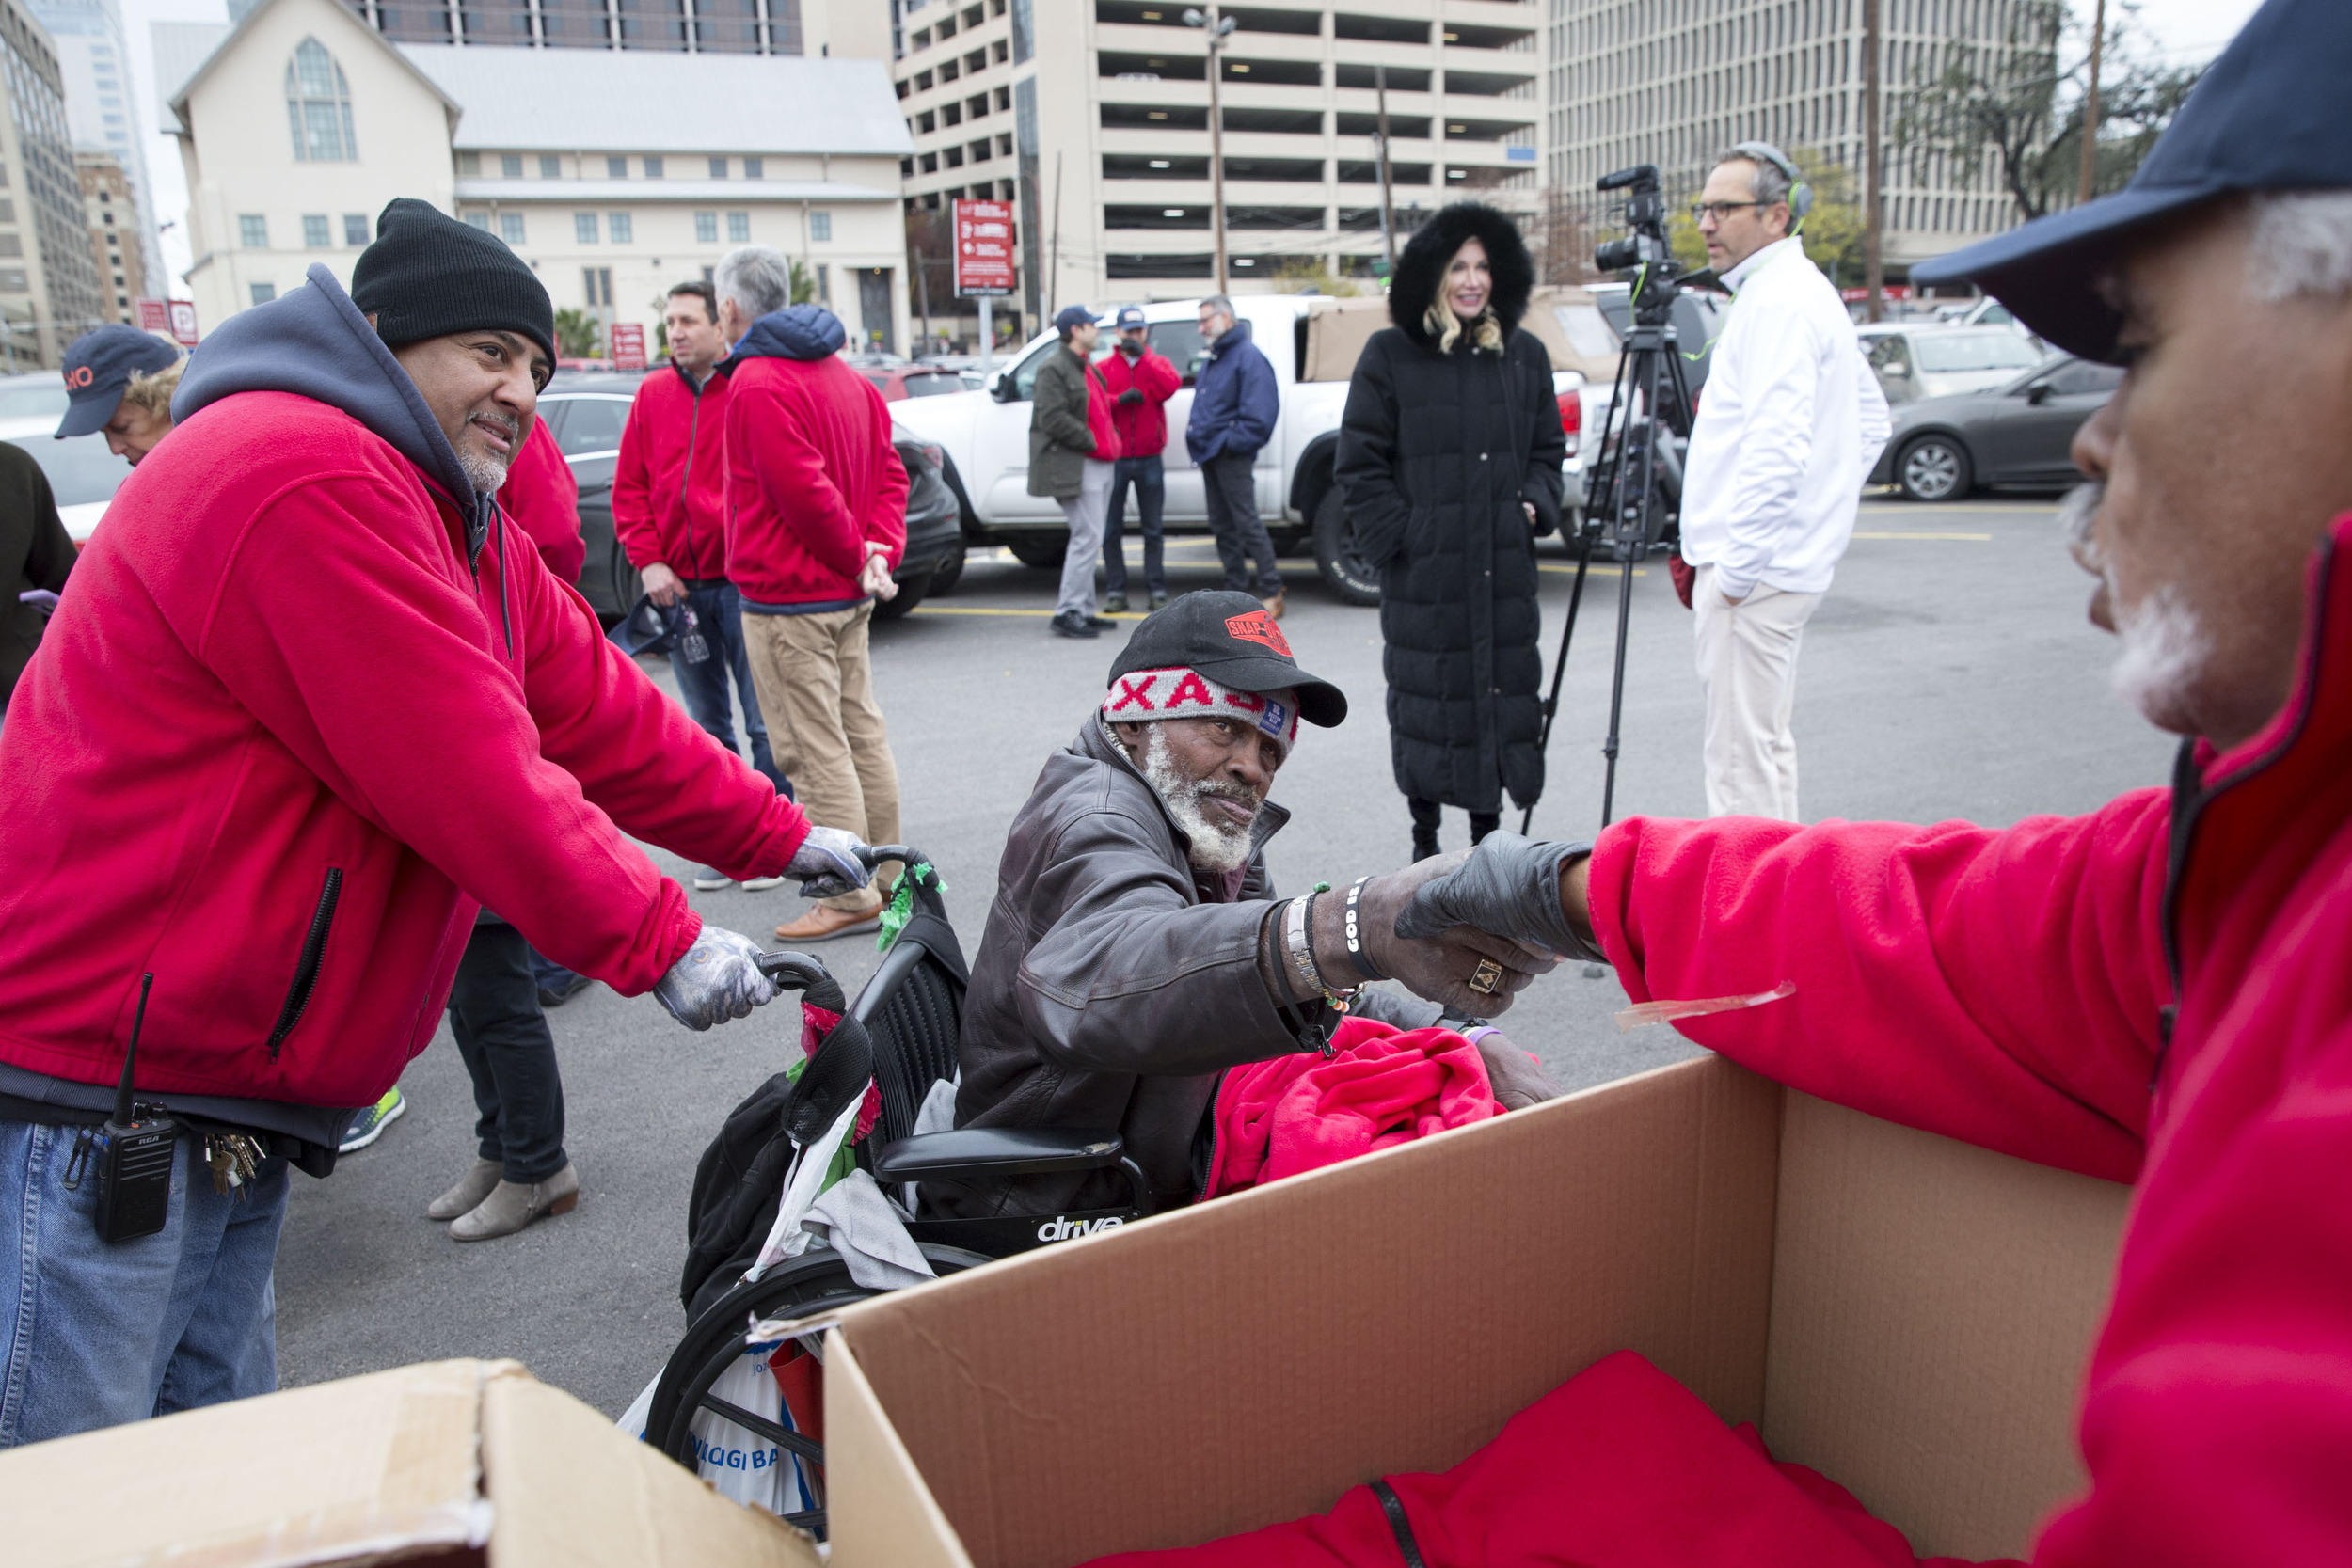 """Purvis Lewis, pushed by Eric Lopez, shakes hands with Manuel Olguin to thank him after receiving a free fleece sweater on Friday, Dec. 14, 2018, as part of the Red Sweater Project. The project, created in partnership between the Cielo Property Group and Livsn Designs, is part of a $1 million commitment to solving homelessness in Austin. According to the city's annual """"Point-In-Time"""" count, at least 2,000 people in Austin currently experience homelessness on any given night."""